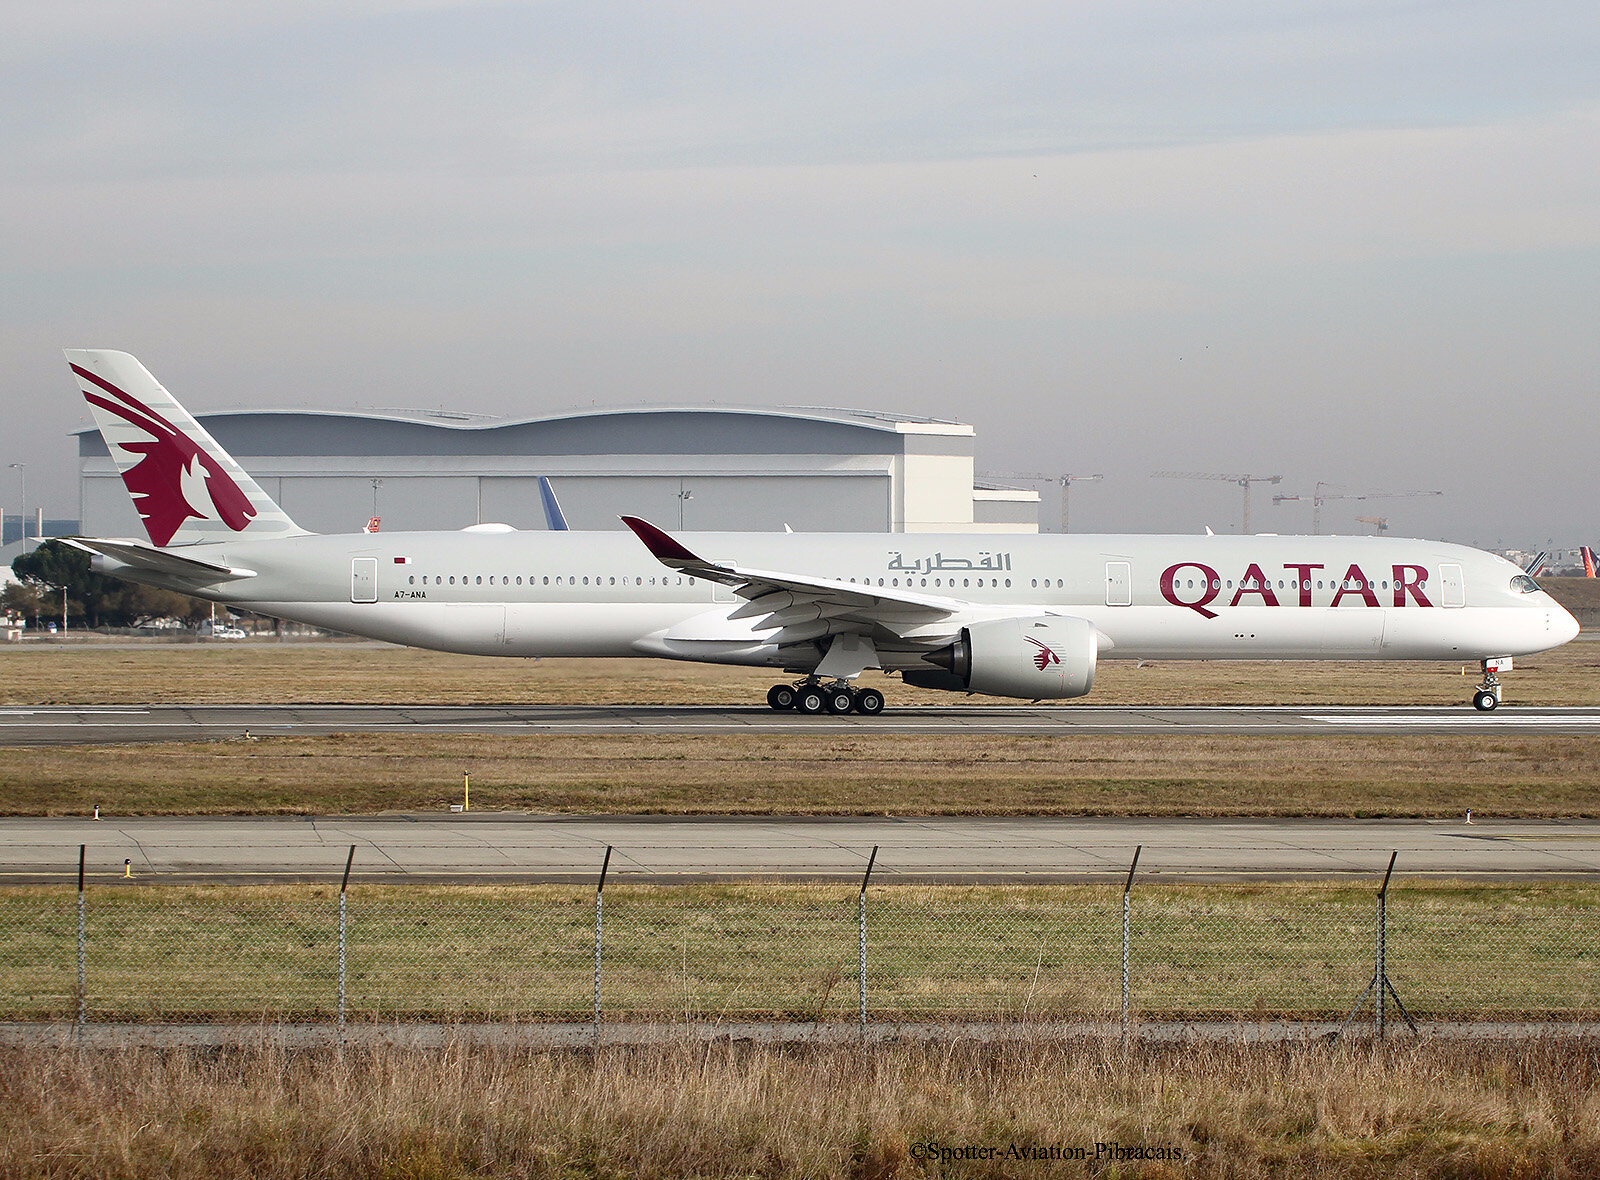 Qatar Airways. Airbus A350-1041